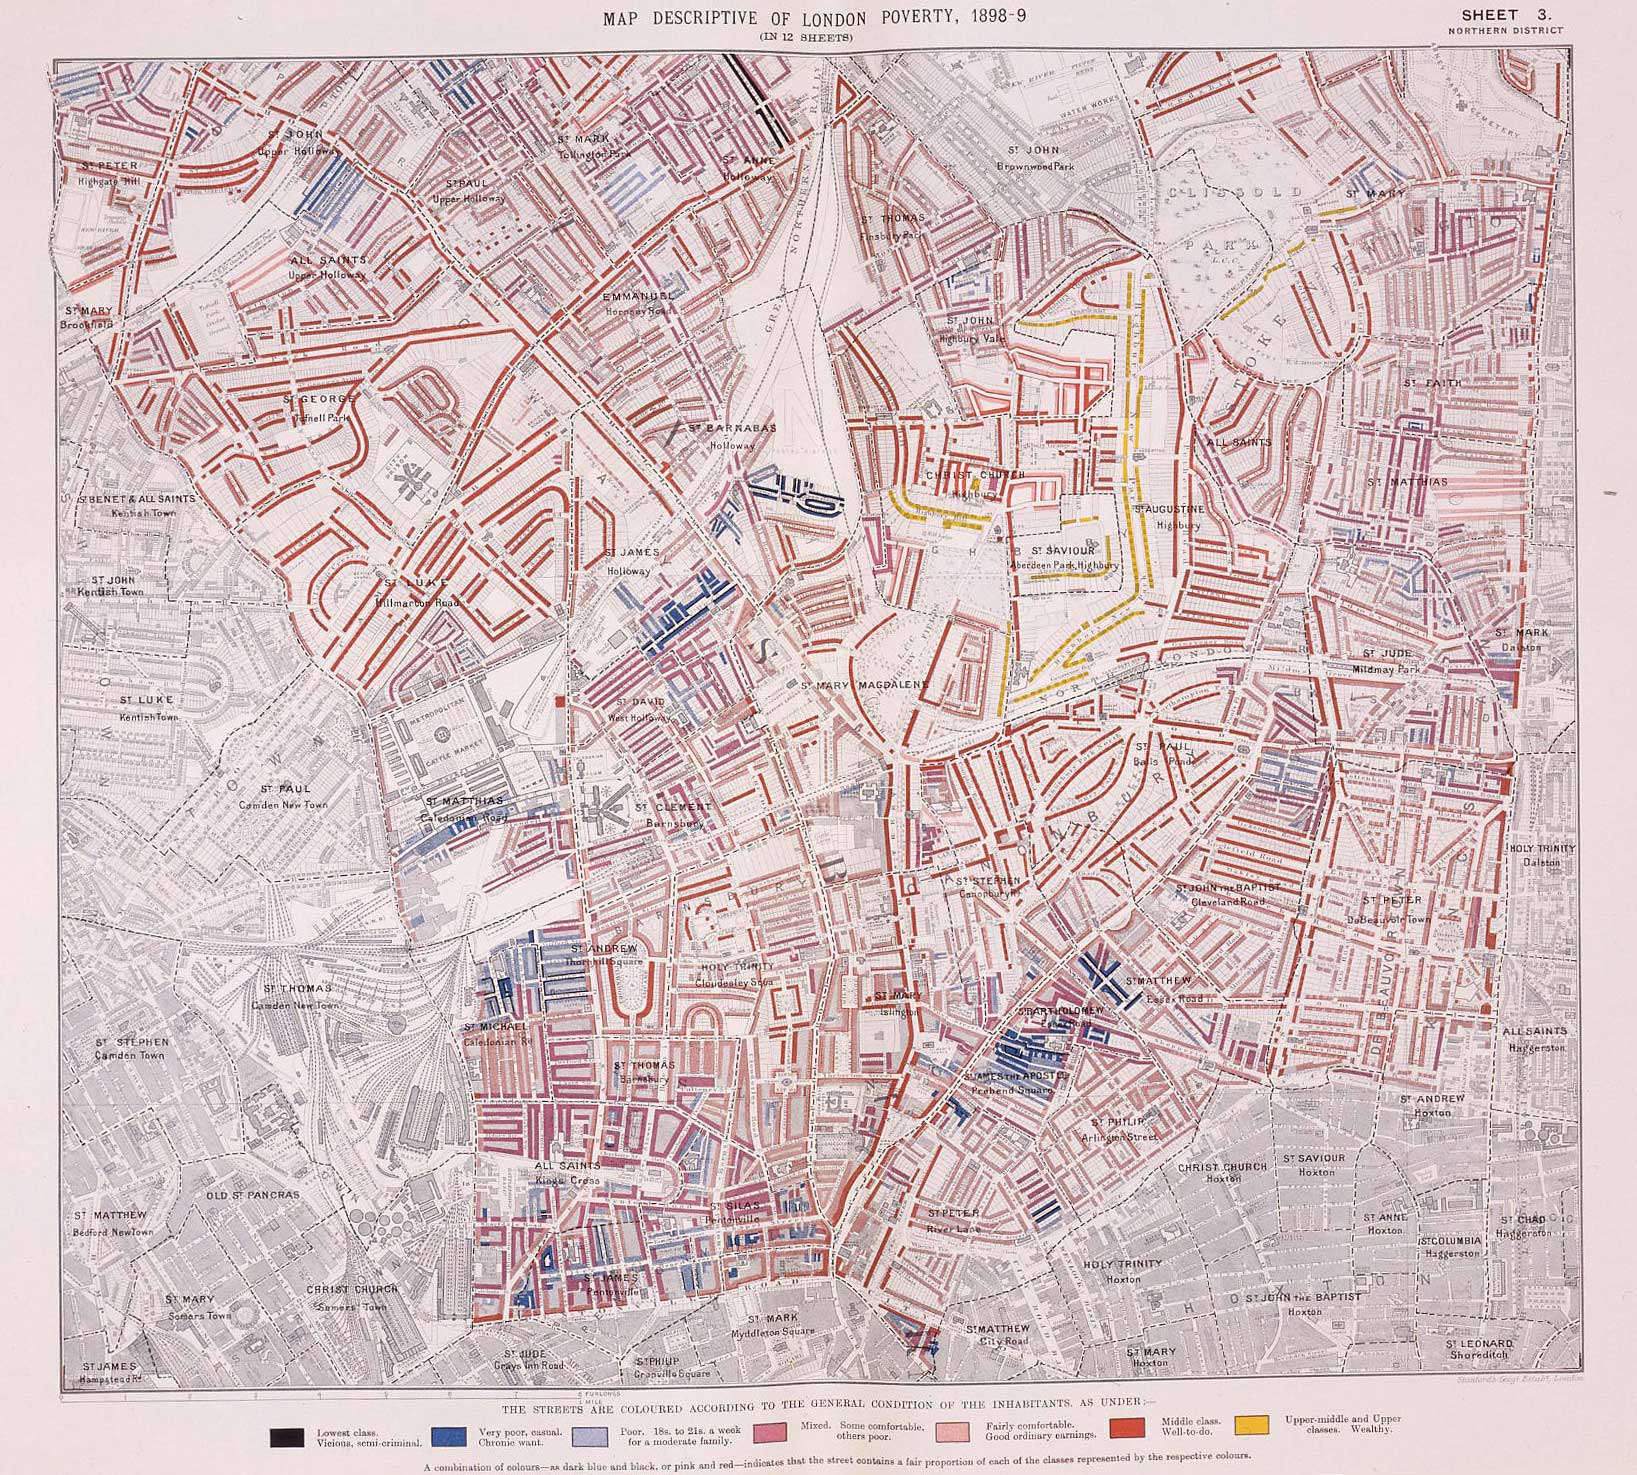 Charles Booth S London Poverty Map The British Library